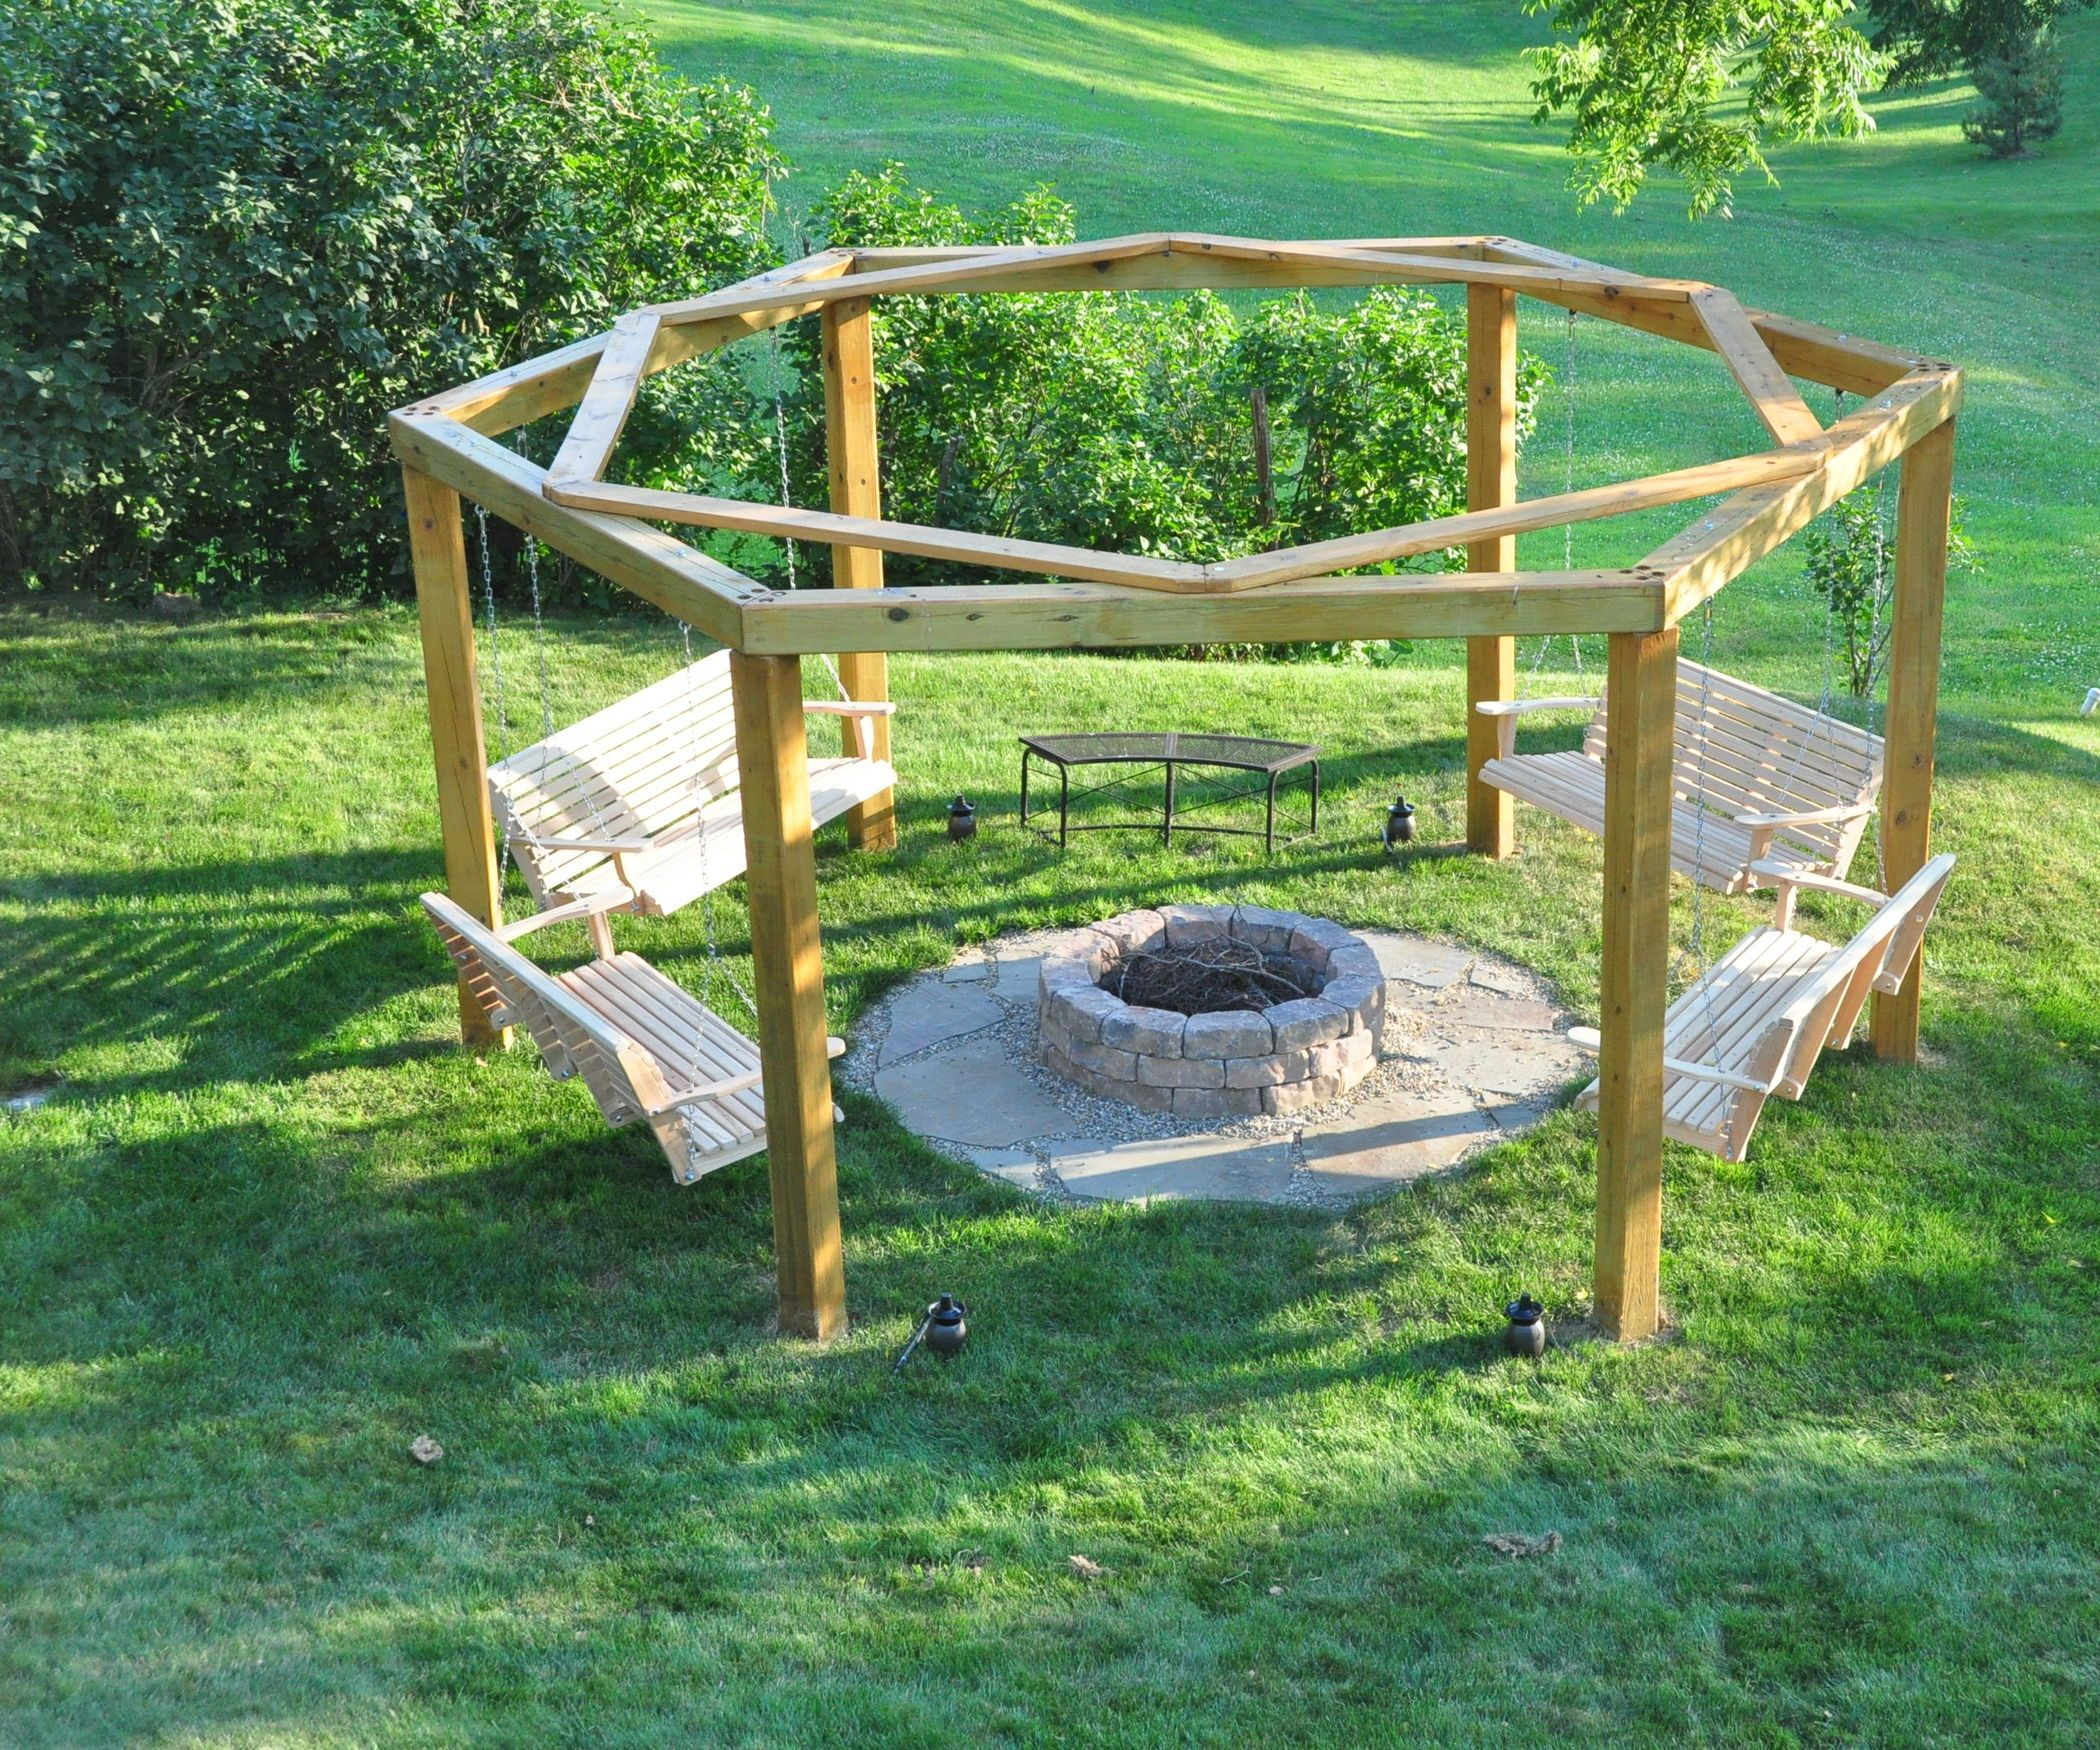 Porch swing fire pit swings fire pits porch swings and for Build porch swing plans